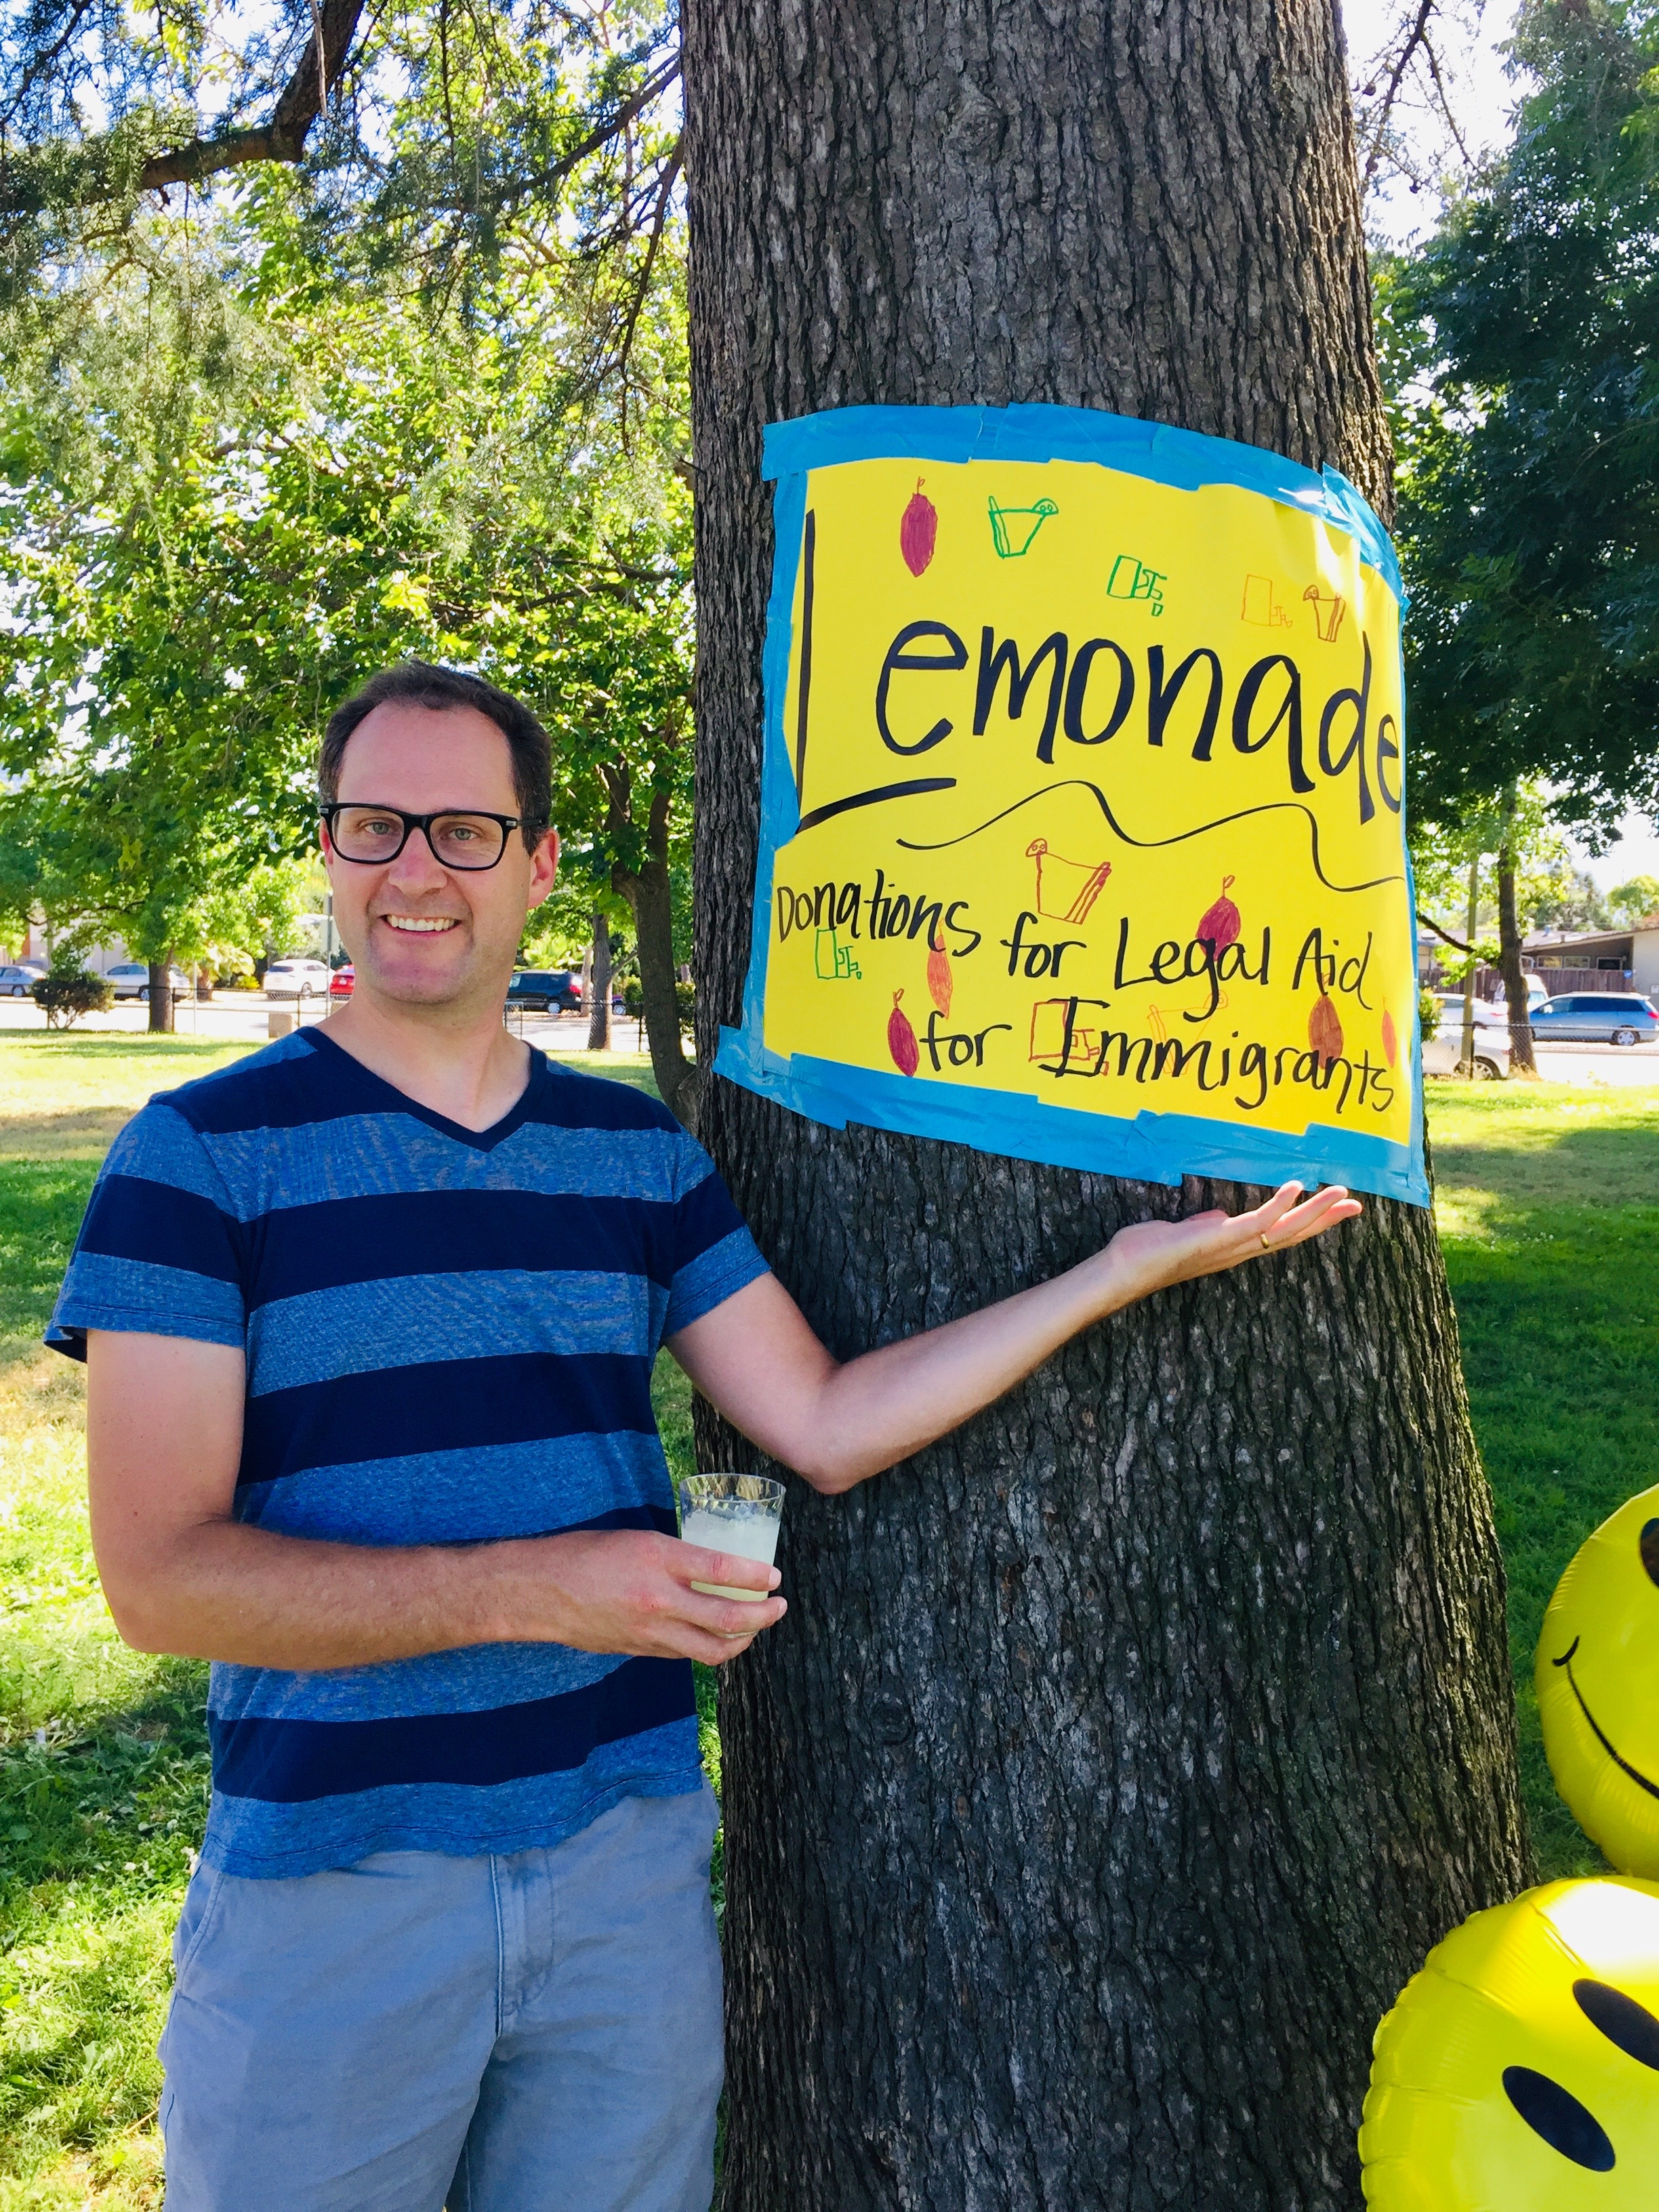 Chris Smallwood, legendary lemonade maker